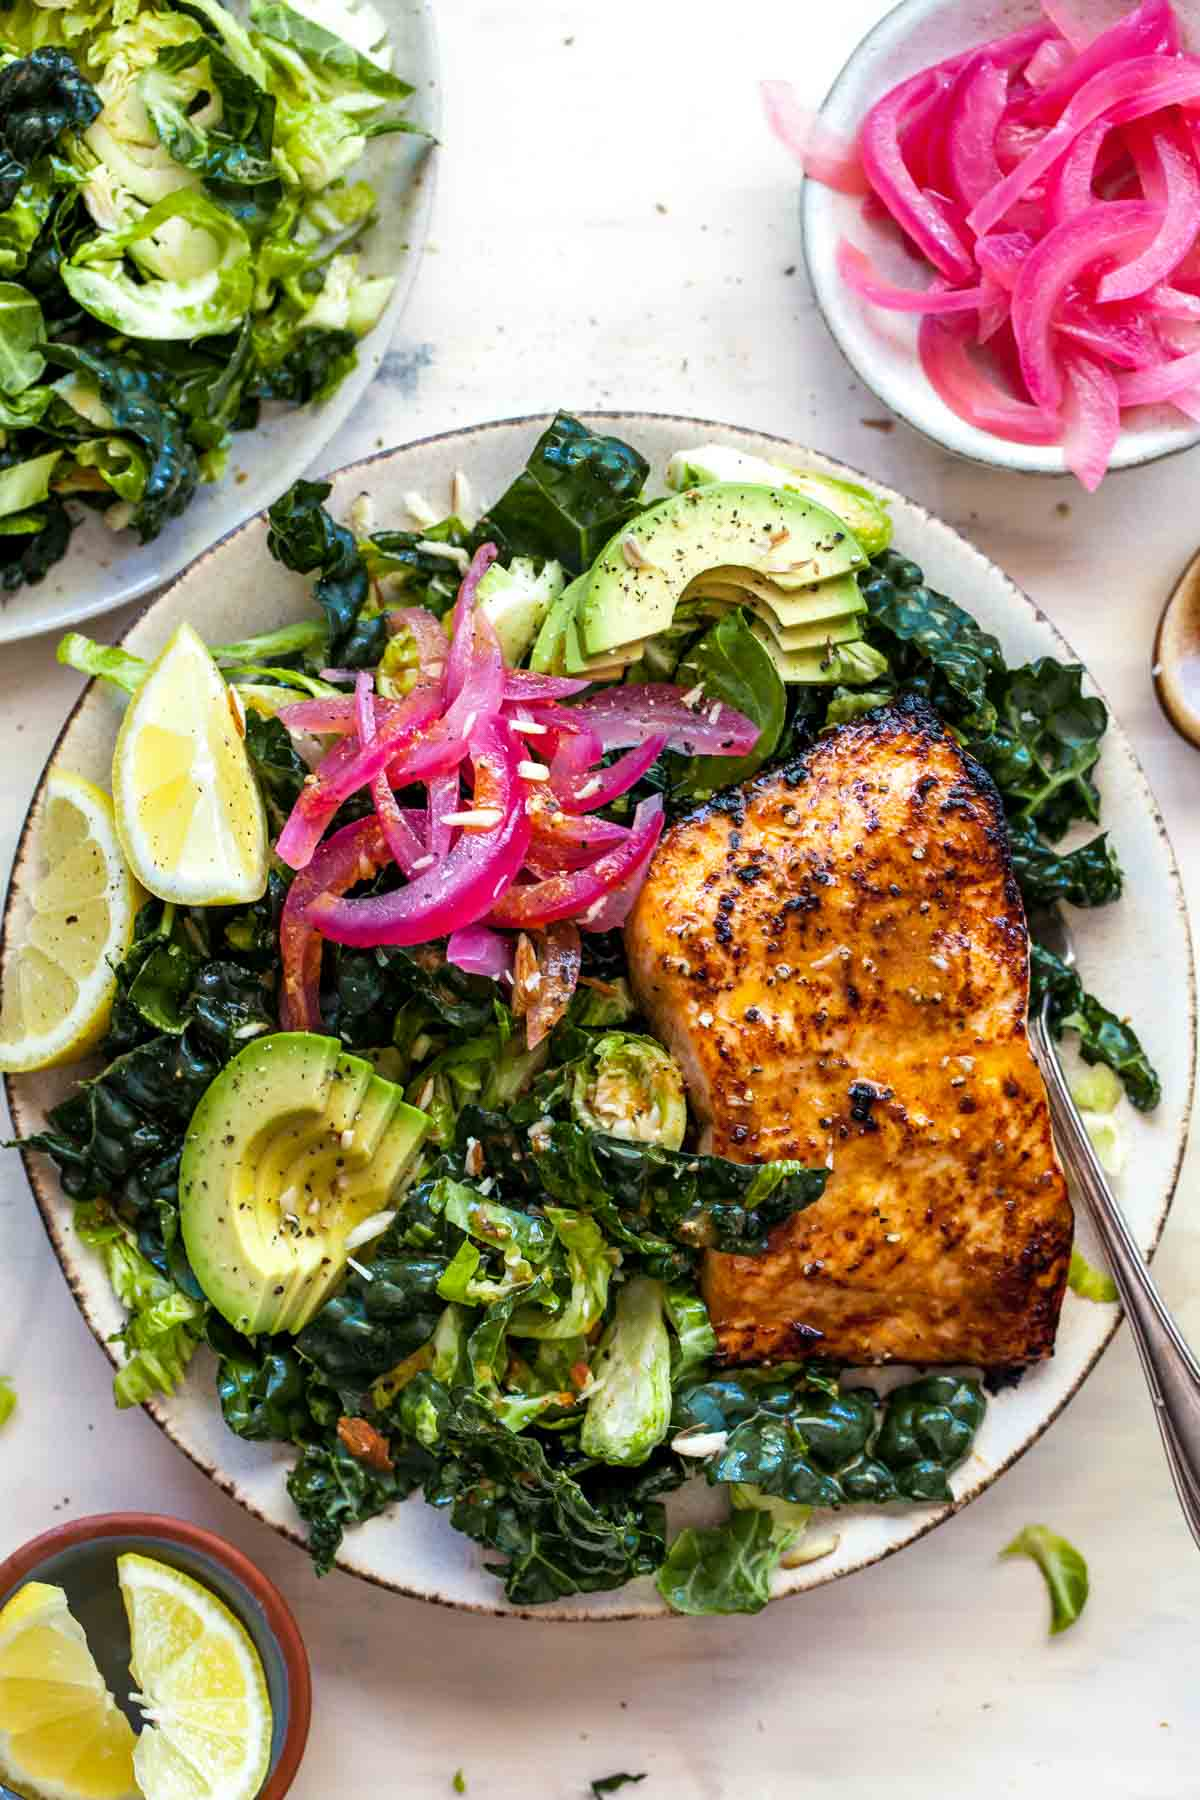 miso-glazed salmon fillet over kale and shredded brussels sprouts on a tan plate